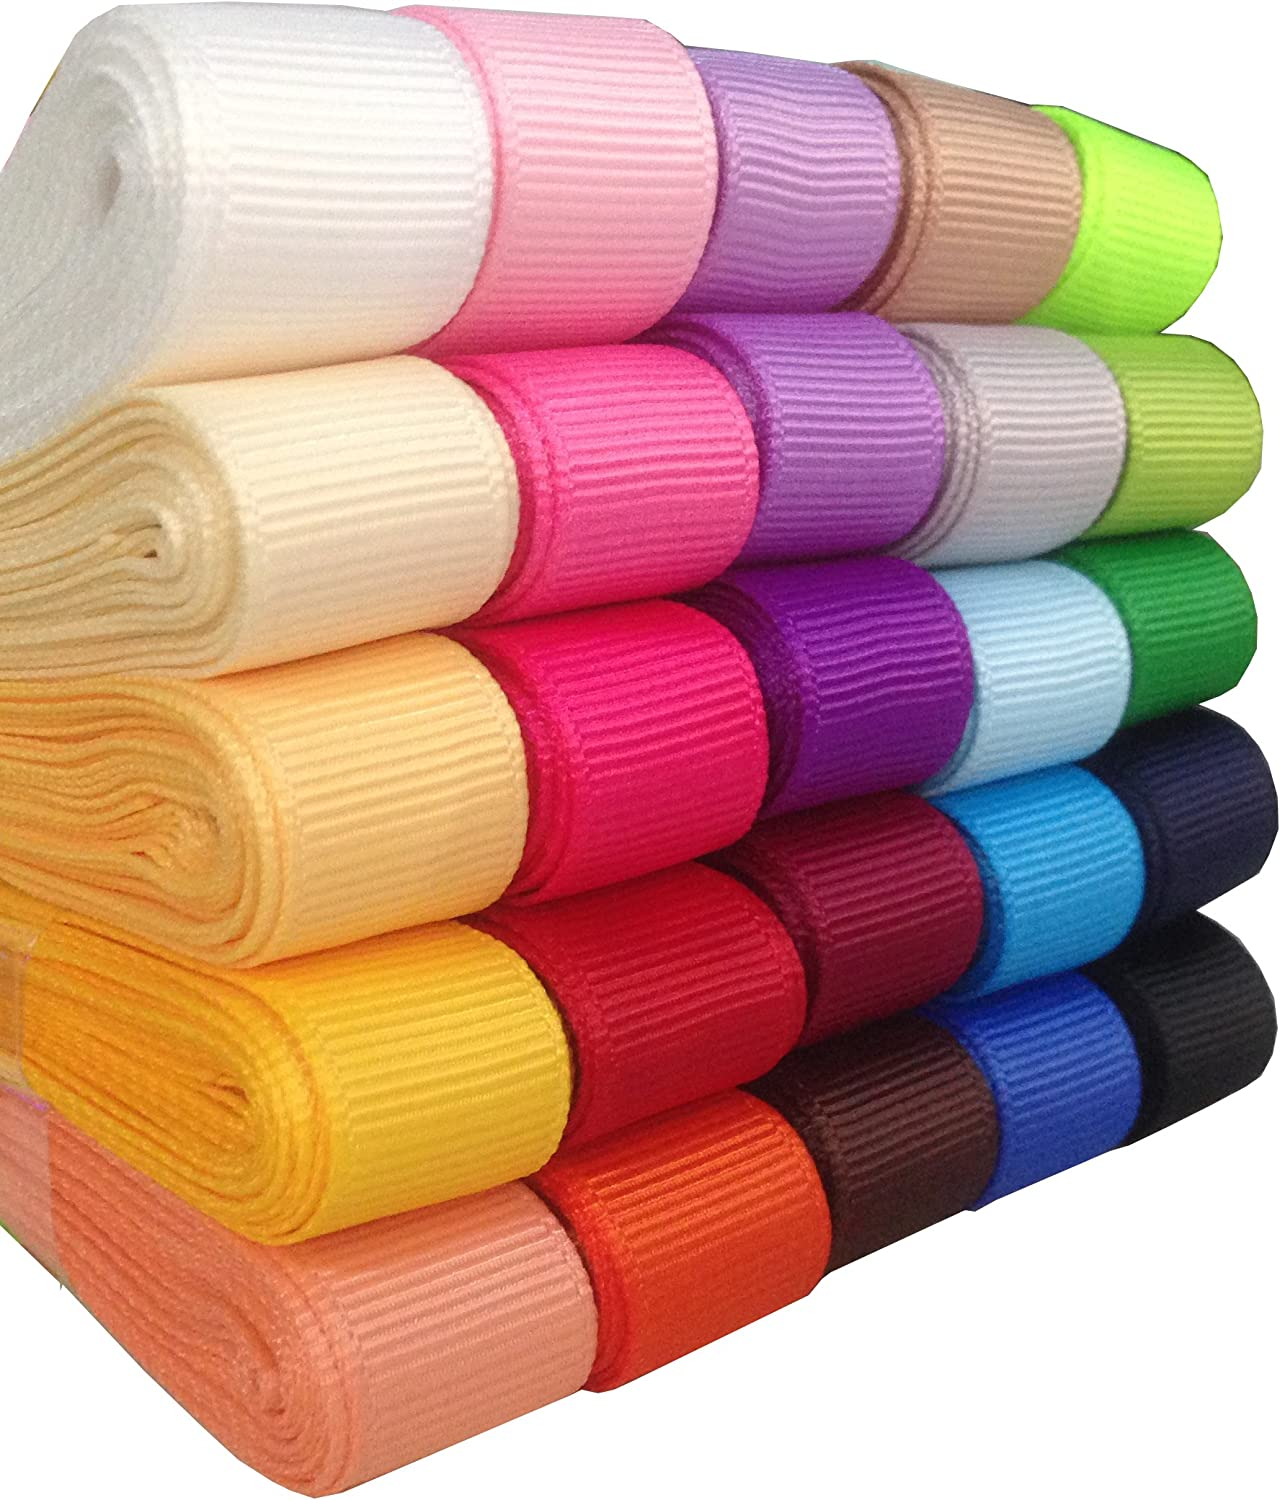 5 METRES TOP QUALITY GROSGRAIN RIBBON 25MM ASSORTED COLS GIFT WRAP CRAFTS